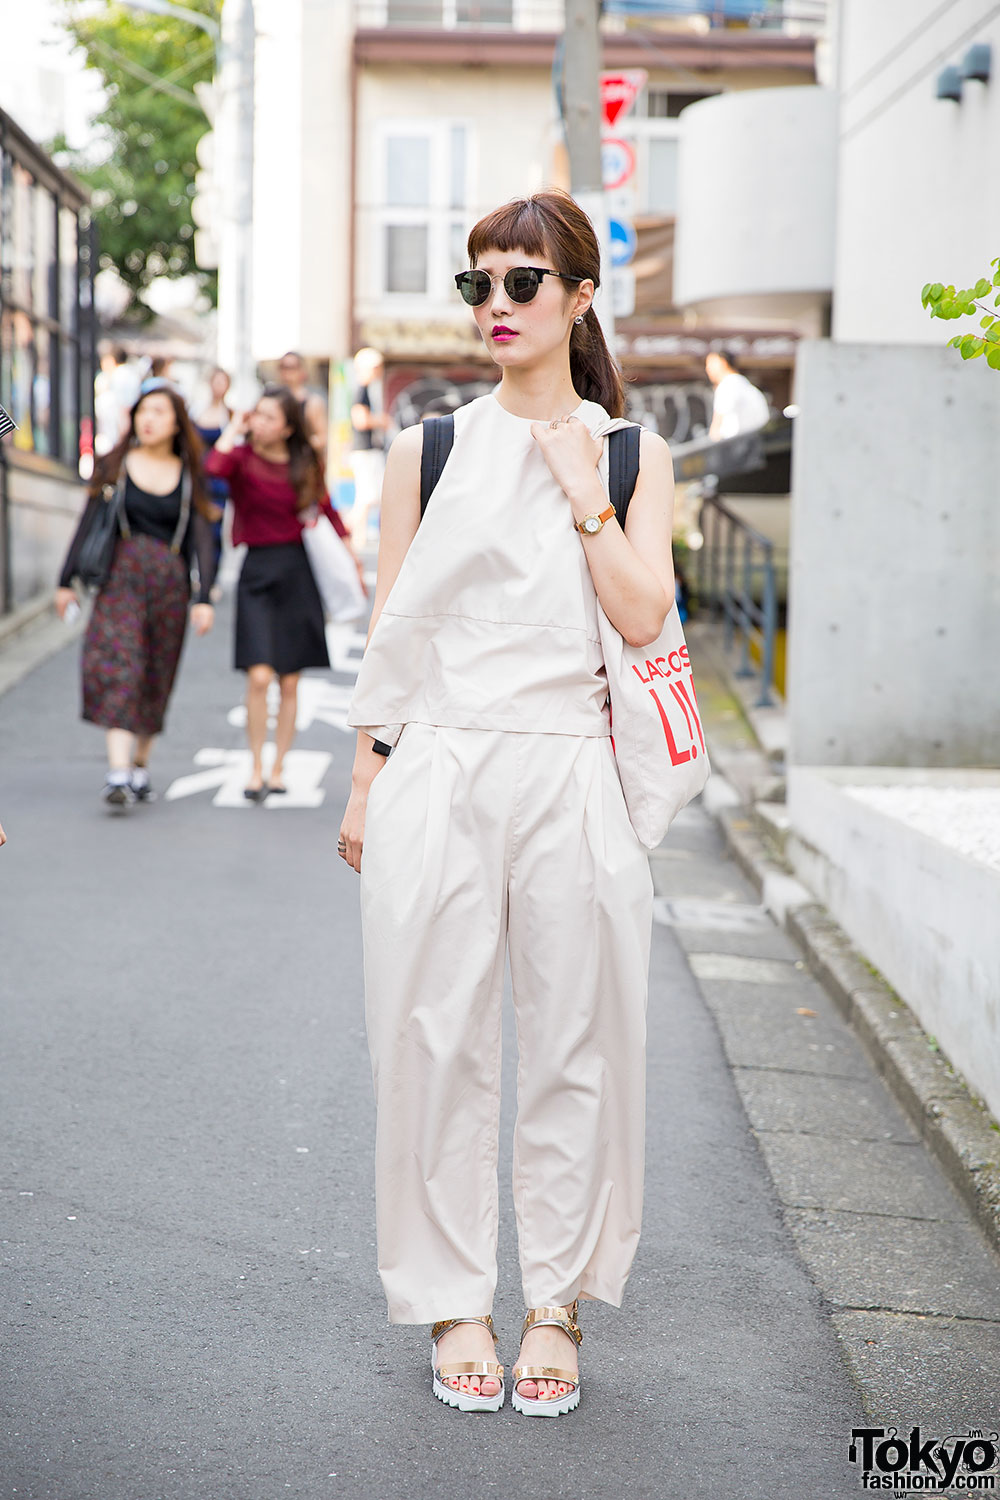 Harajuku girl in minimalist look w gold sandals marc for Minimalist living clothes